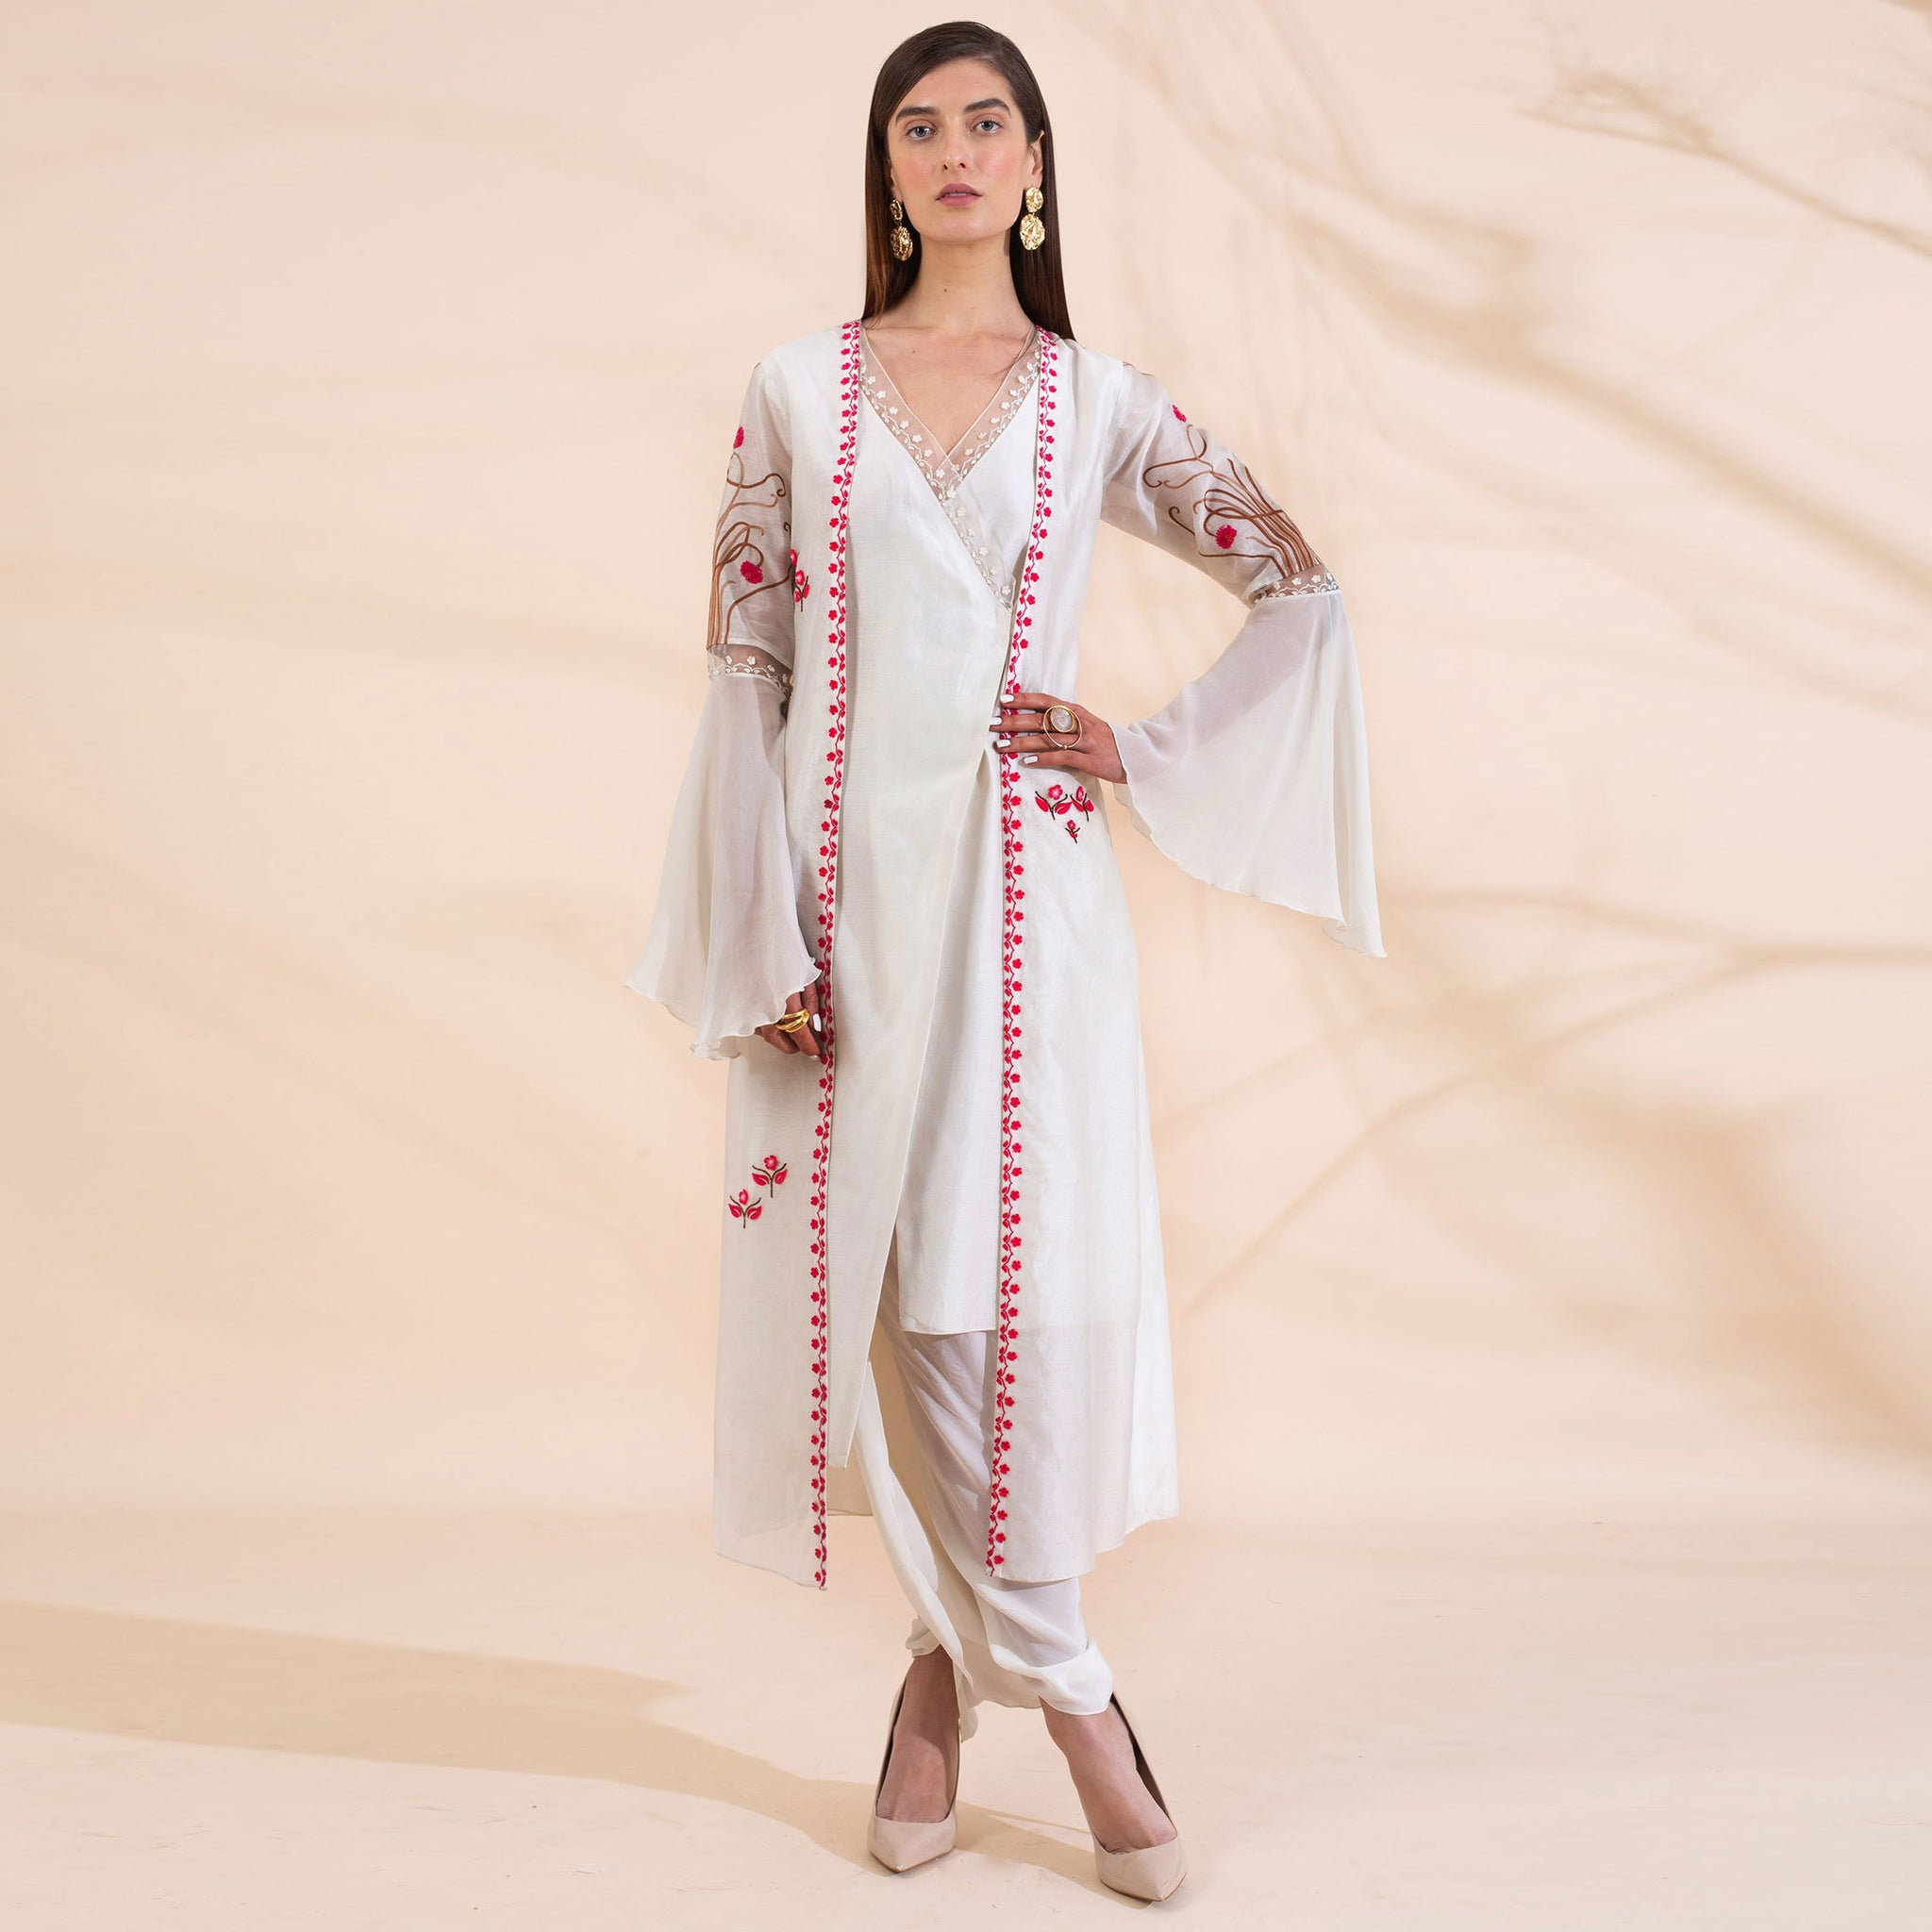 Embroidered Asymmetric Kurta Attached with Long Jacket Paired with Dhoti Pants